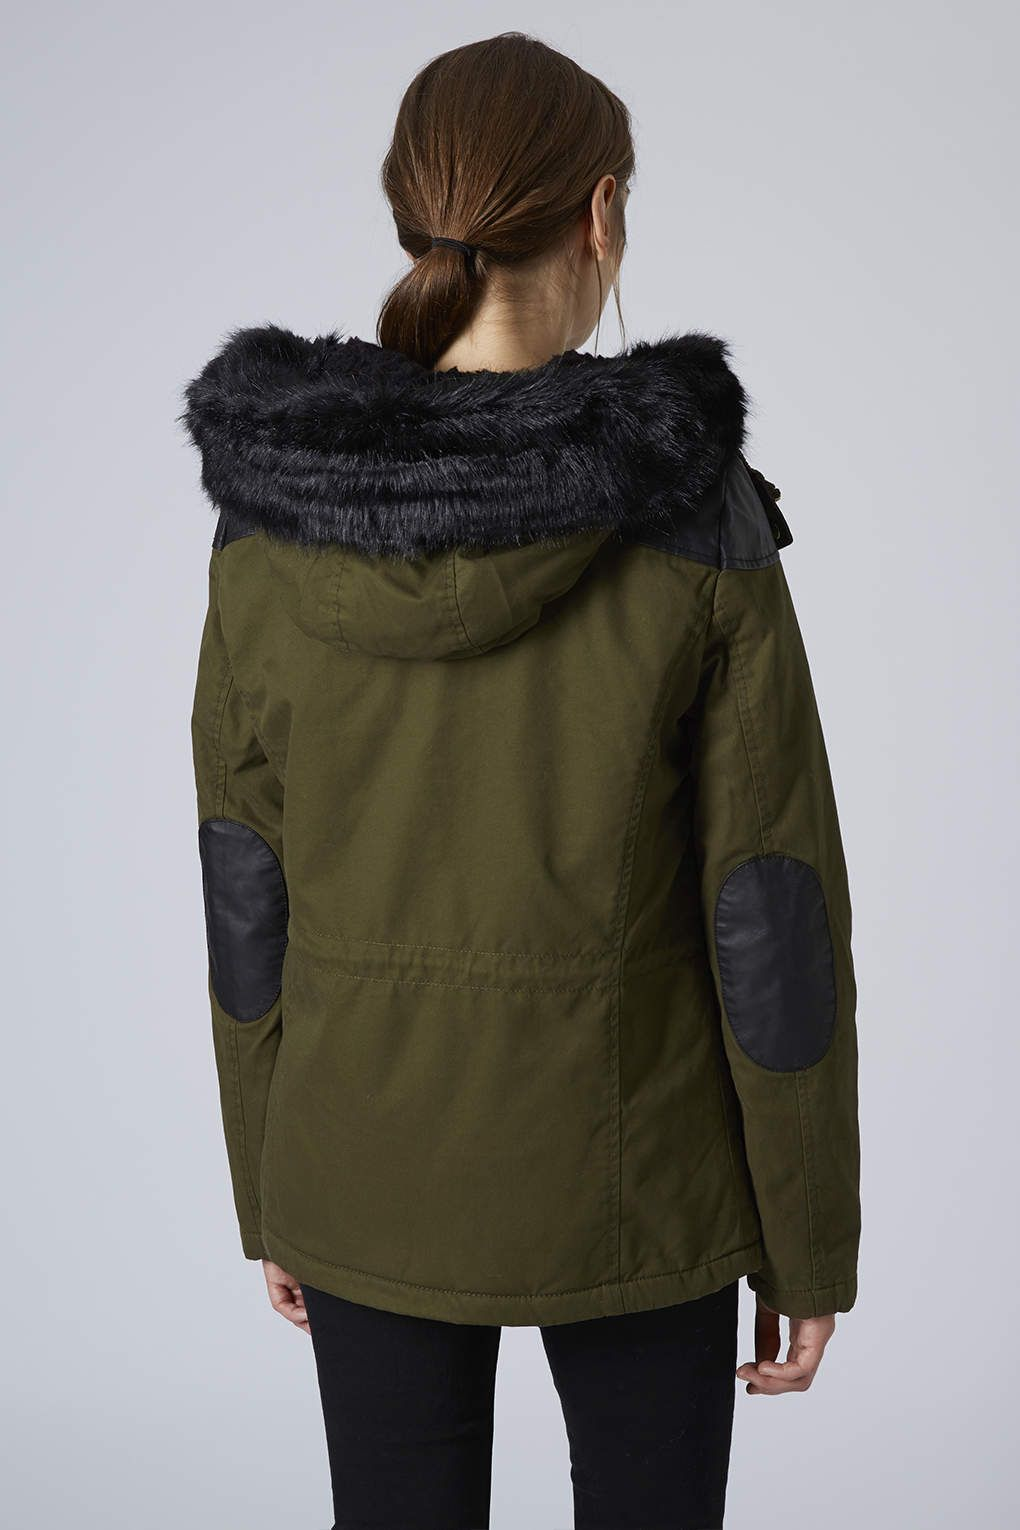 TopShop - Short Padded Parka Jacket | Fashion Victim | Pinterest ...